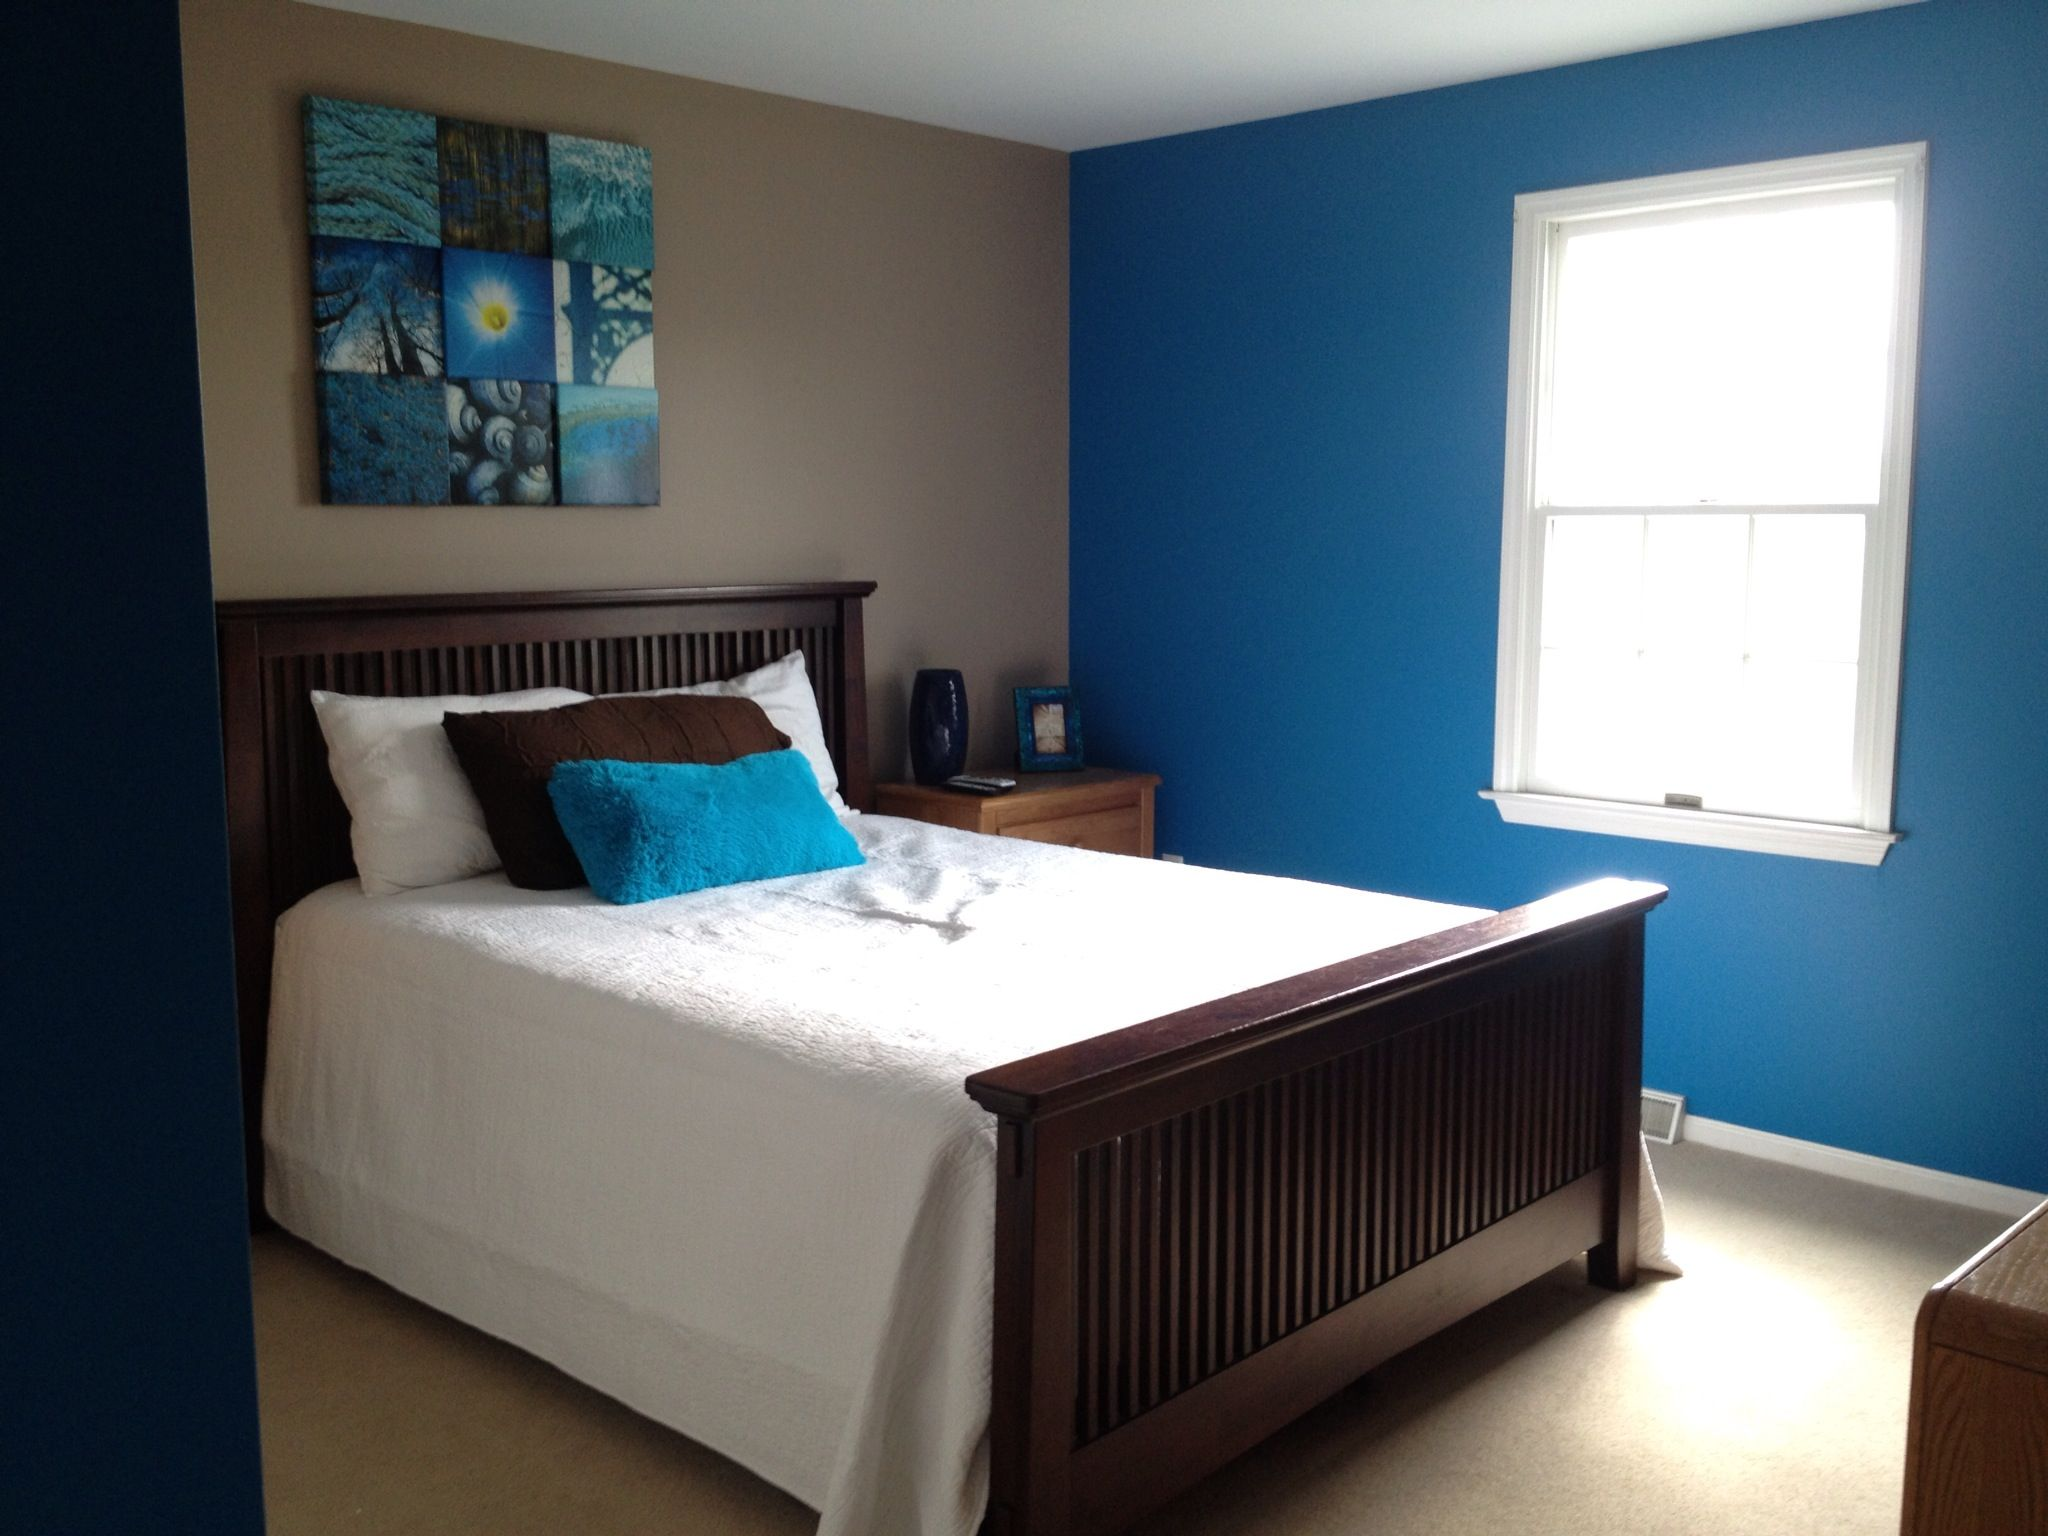 ... ideas pinterest click for details spare rooms paint spare bedroom